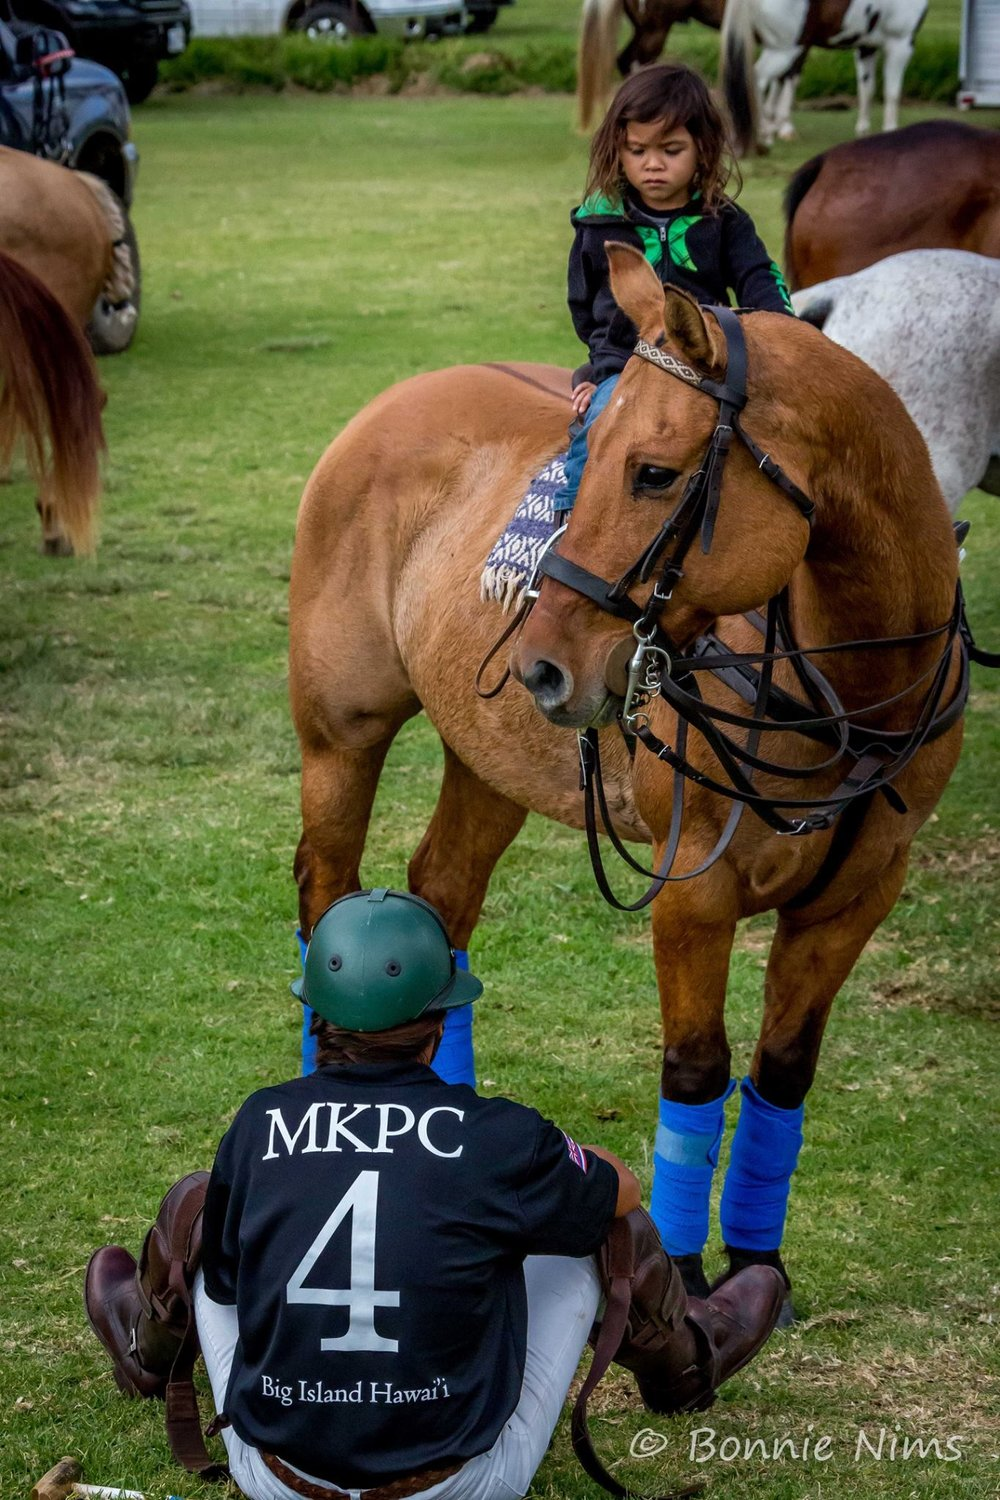 The love for polo - May begin at any age